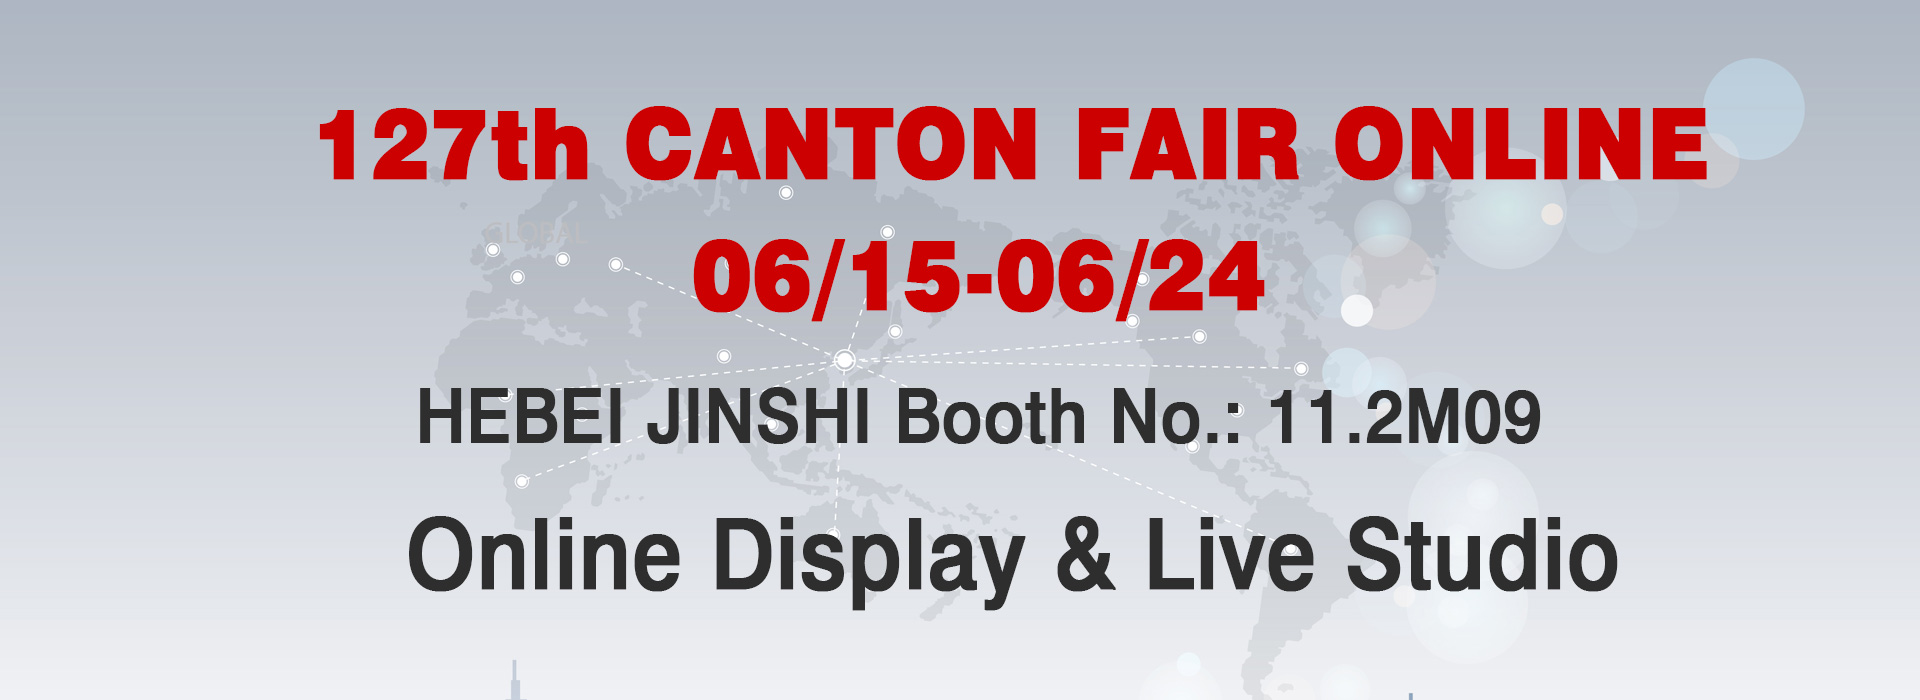 Meet in 127th Canton Fair Online